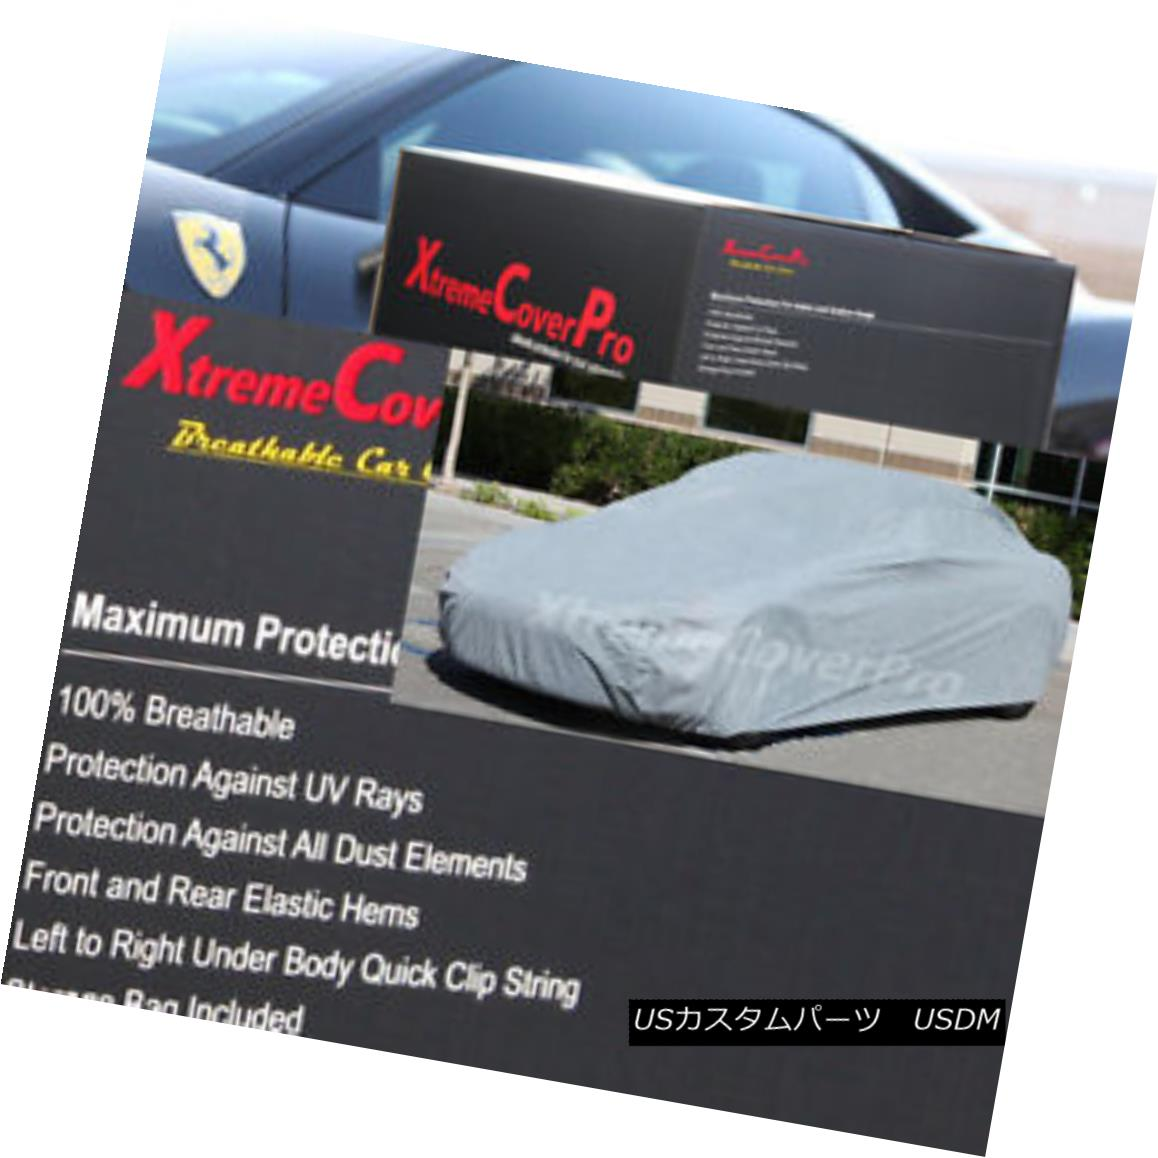 カーカバー 2016 MERCEDES-BENZ SLK300 SLK350 SLK55 BREATHABLE CAR COVER - GREY 2016年MERCEDES-BENZ SLK300 SLK350 SLK55ブレーキカーカバー - グレー